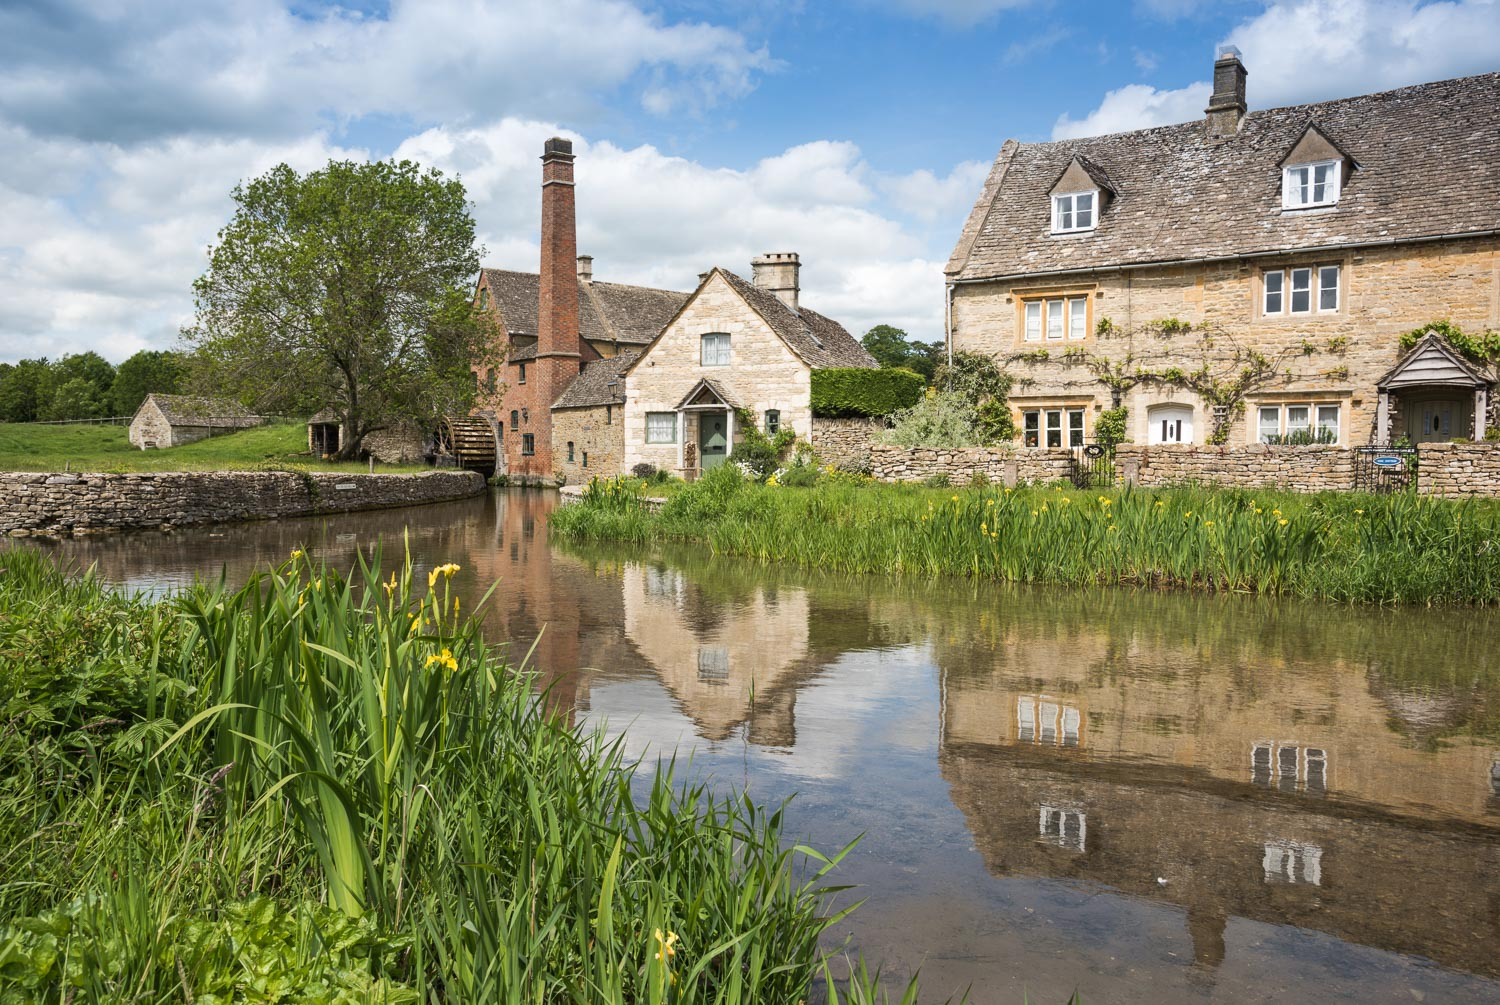 Cotswolds photography workshop with Imageseen